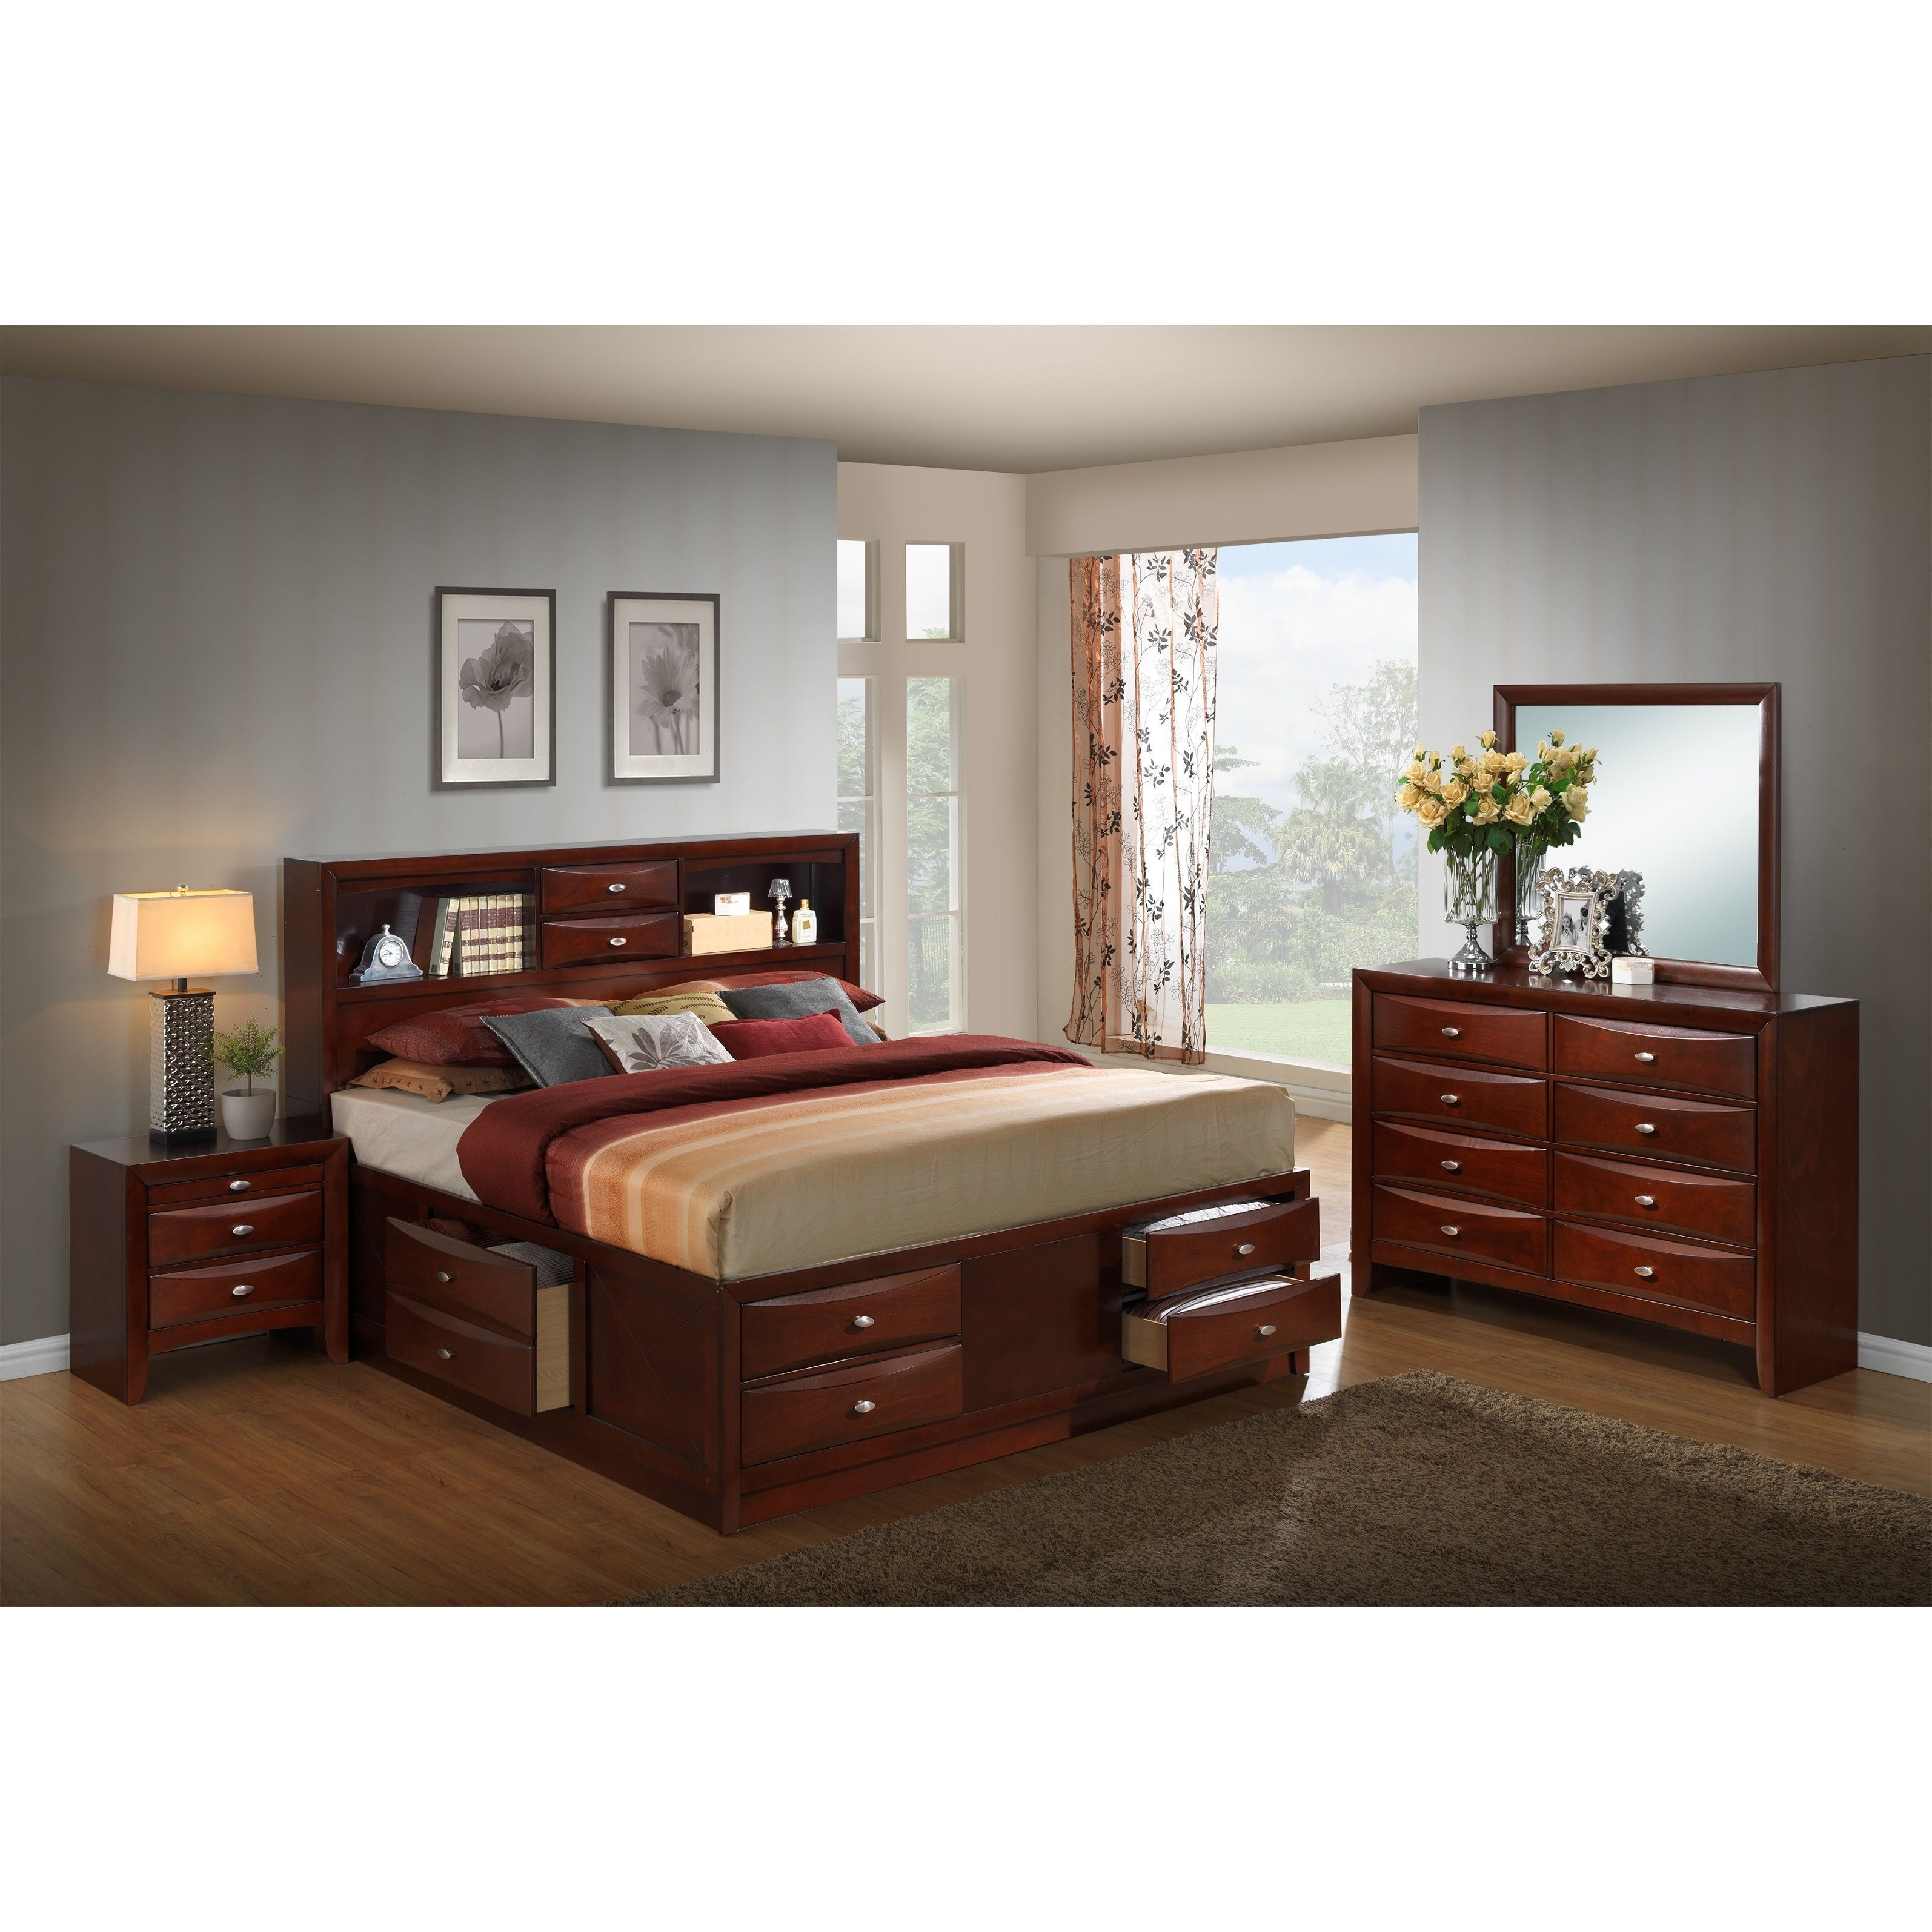 Emily 111 Wood Storage Bed Group with King Bed, Dresser